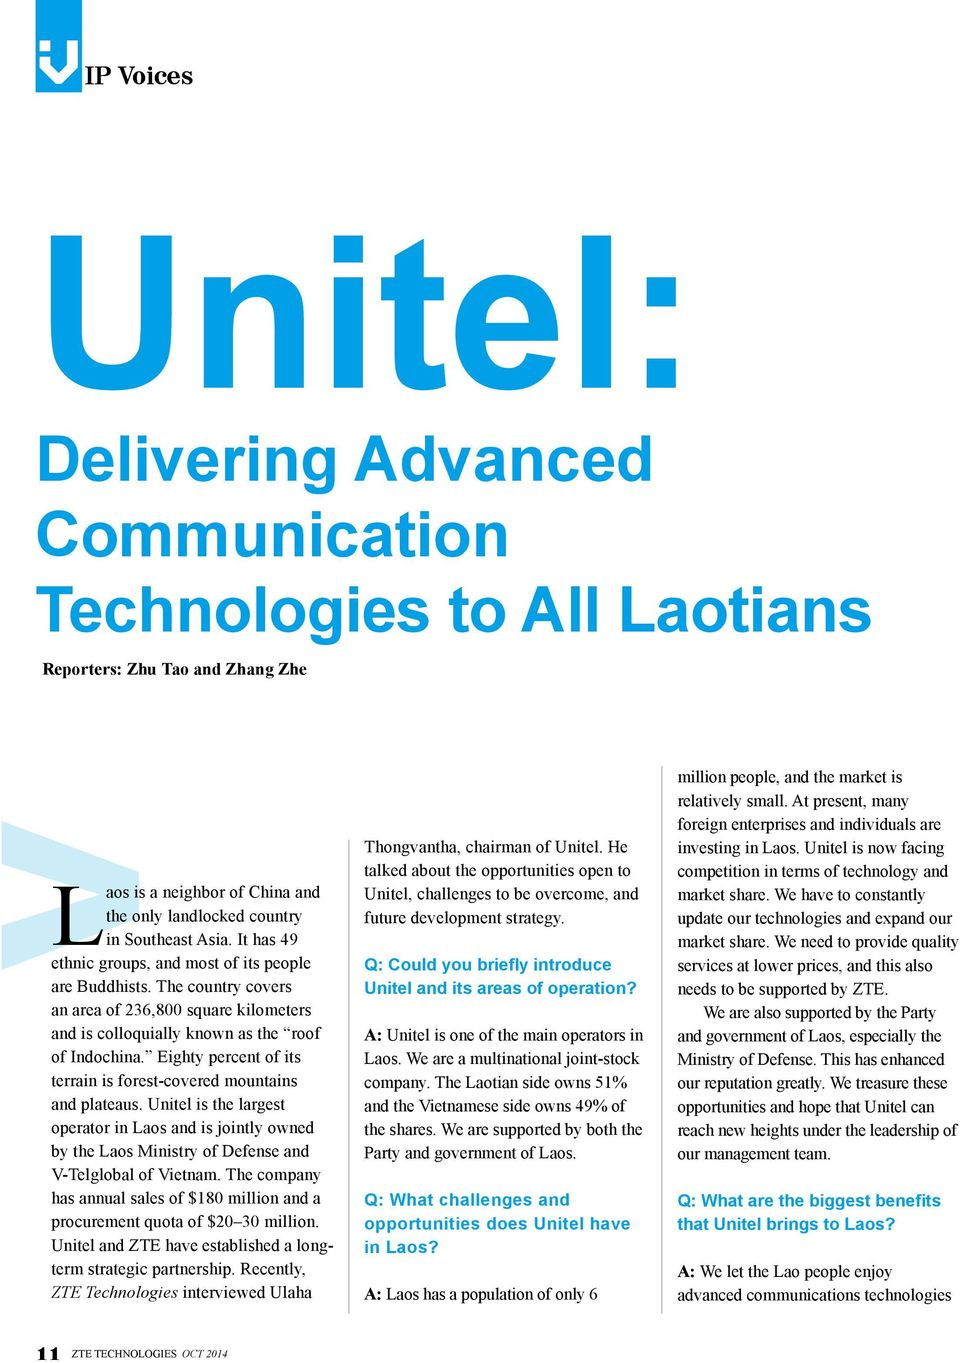 Eighty percent of its terrain is forest-covered mountains and plateaus. Unitel is the largest operator in Laos and is jointly owned by the Laos Ministry of Defense and V-Telglobal of Vietnam.